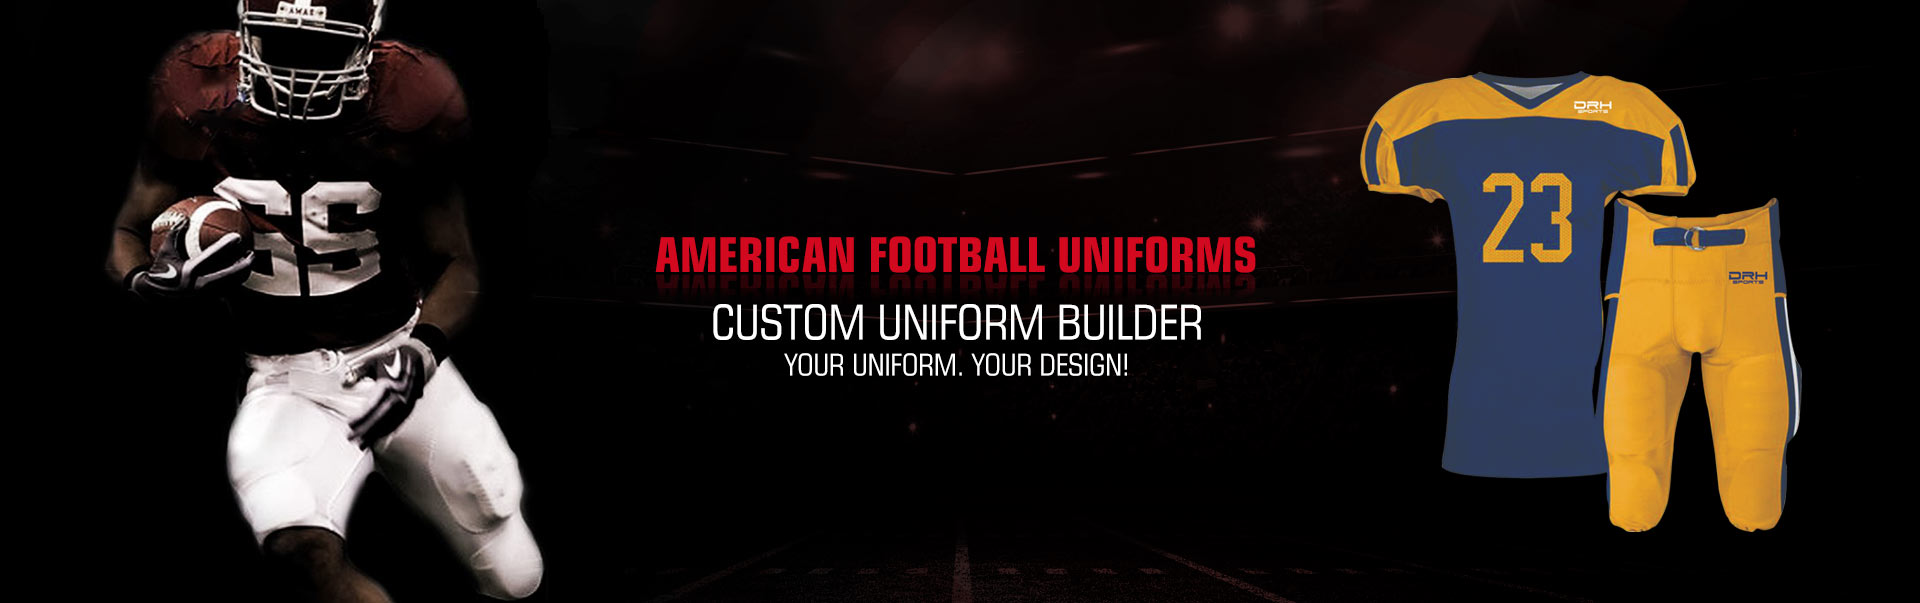 American Football Uniform Wholesaler, Suppliers in Vladivostok